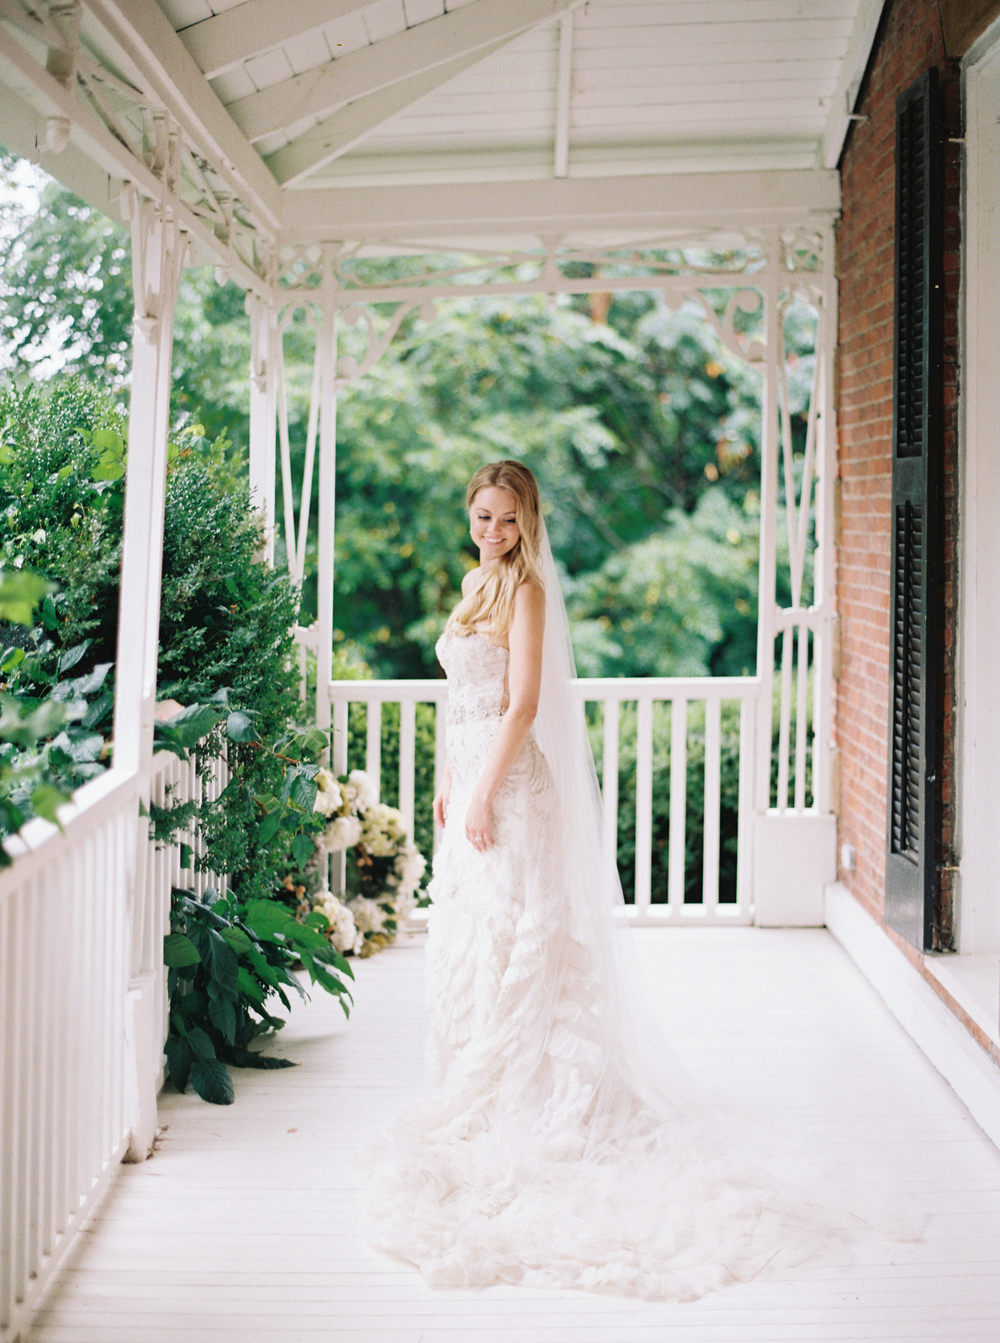 Kurtz-Orchards-Niagara-on-the-Lake-Wedding-photography-by-When-He-Found-Her-066.JPG